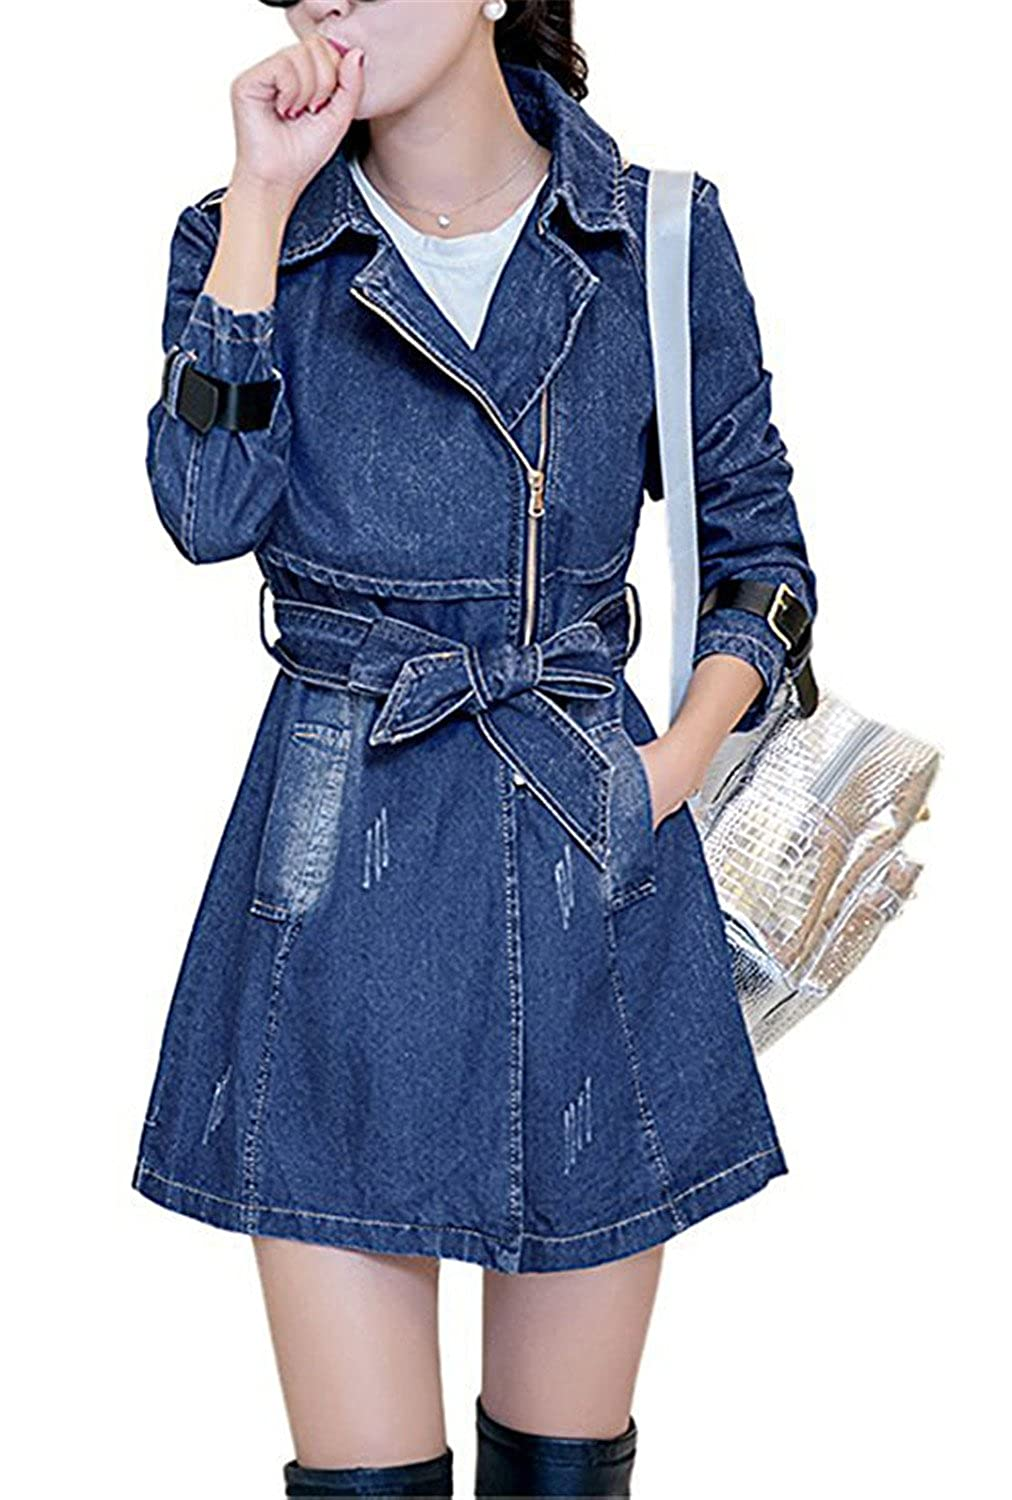 b7c8e5dfd90 Cheryl Bull Popular Womens Fashion Lapel Collar Destroyed Denim Trench Coat  Outerwear Jacket at Amazon Women s Coats Shop